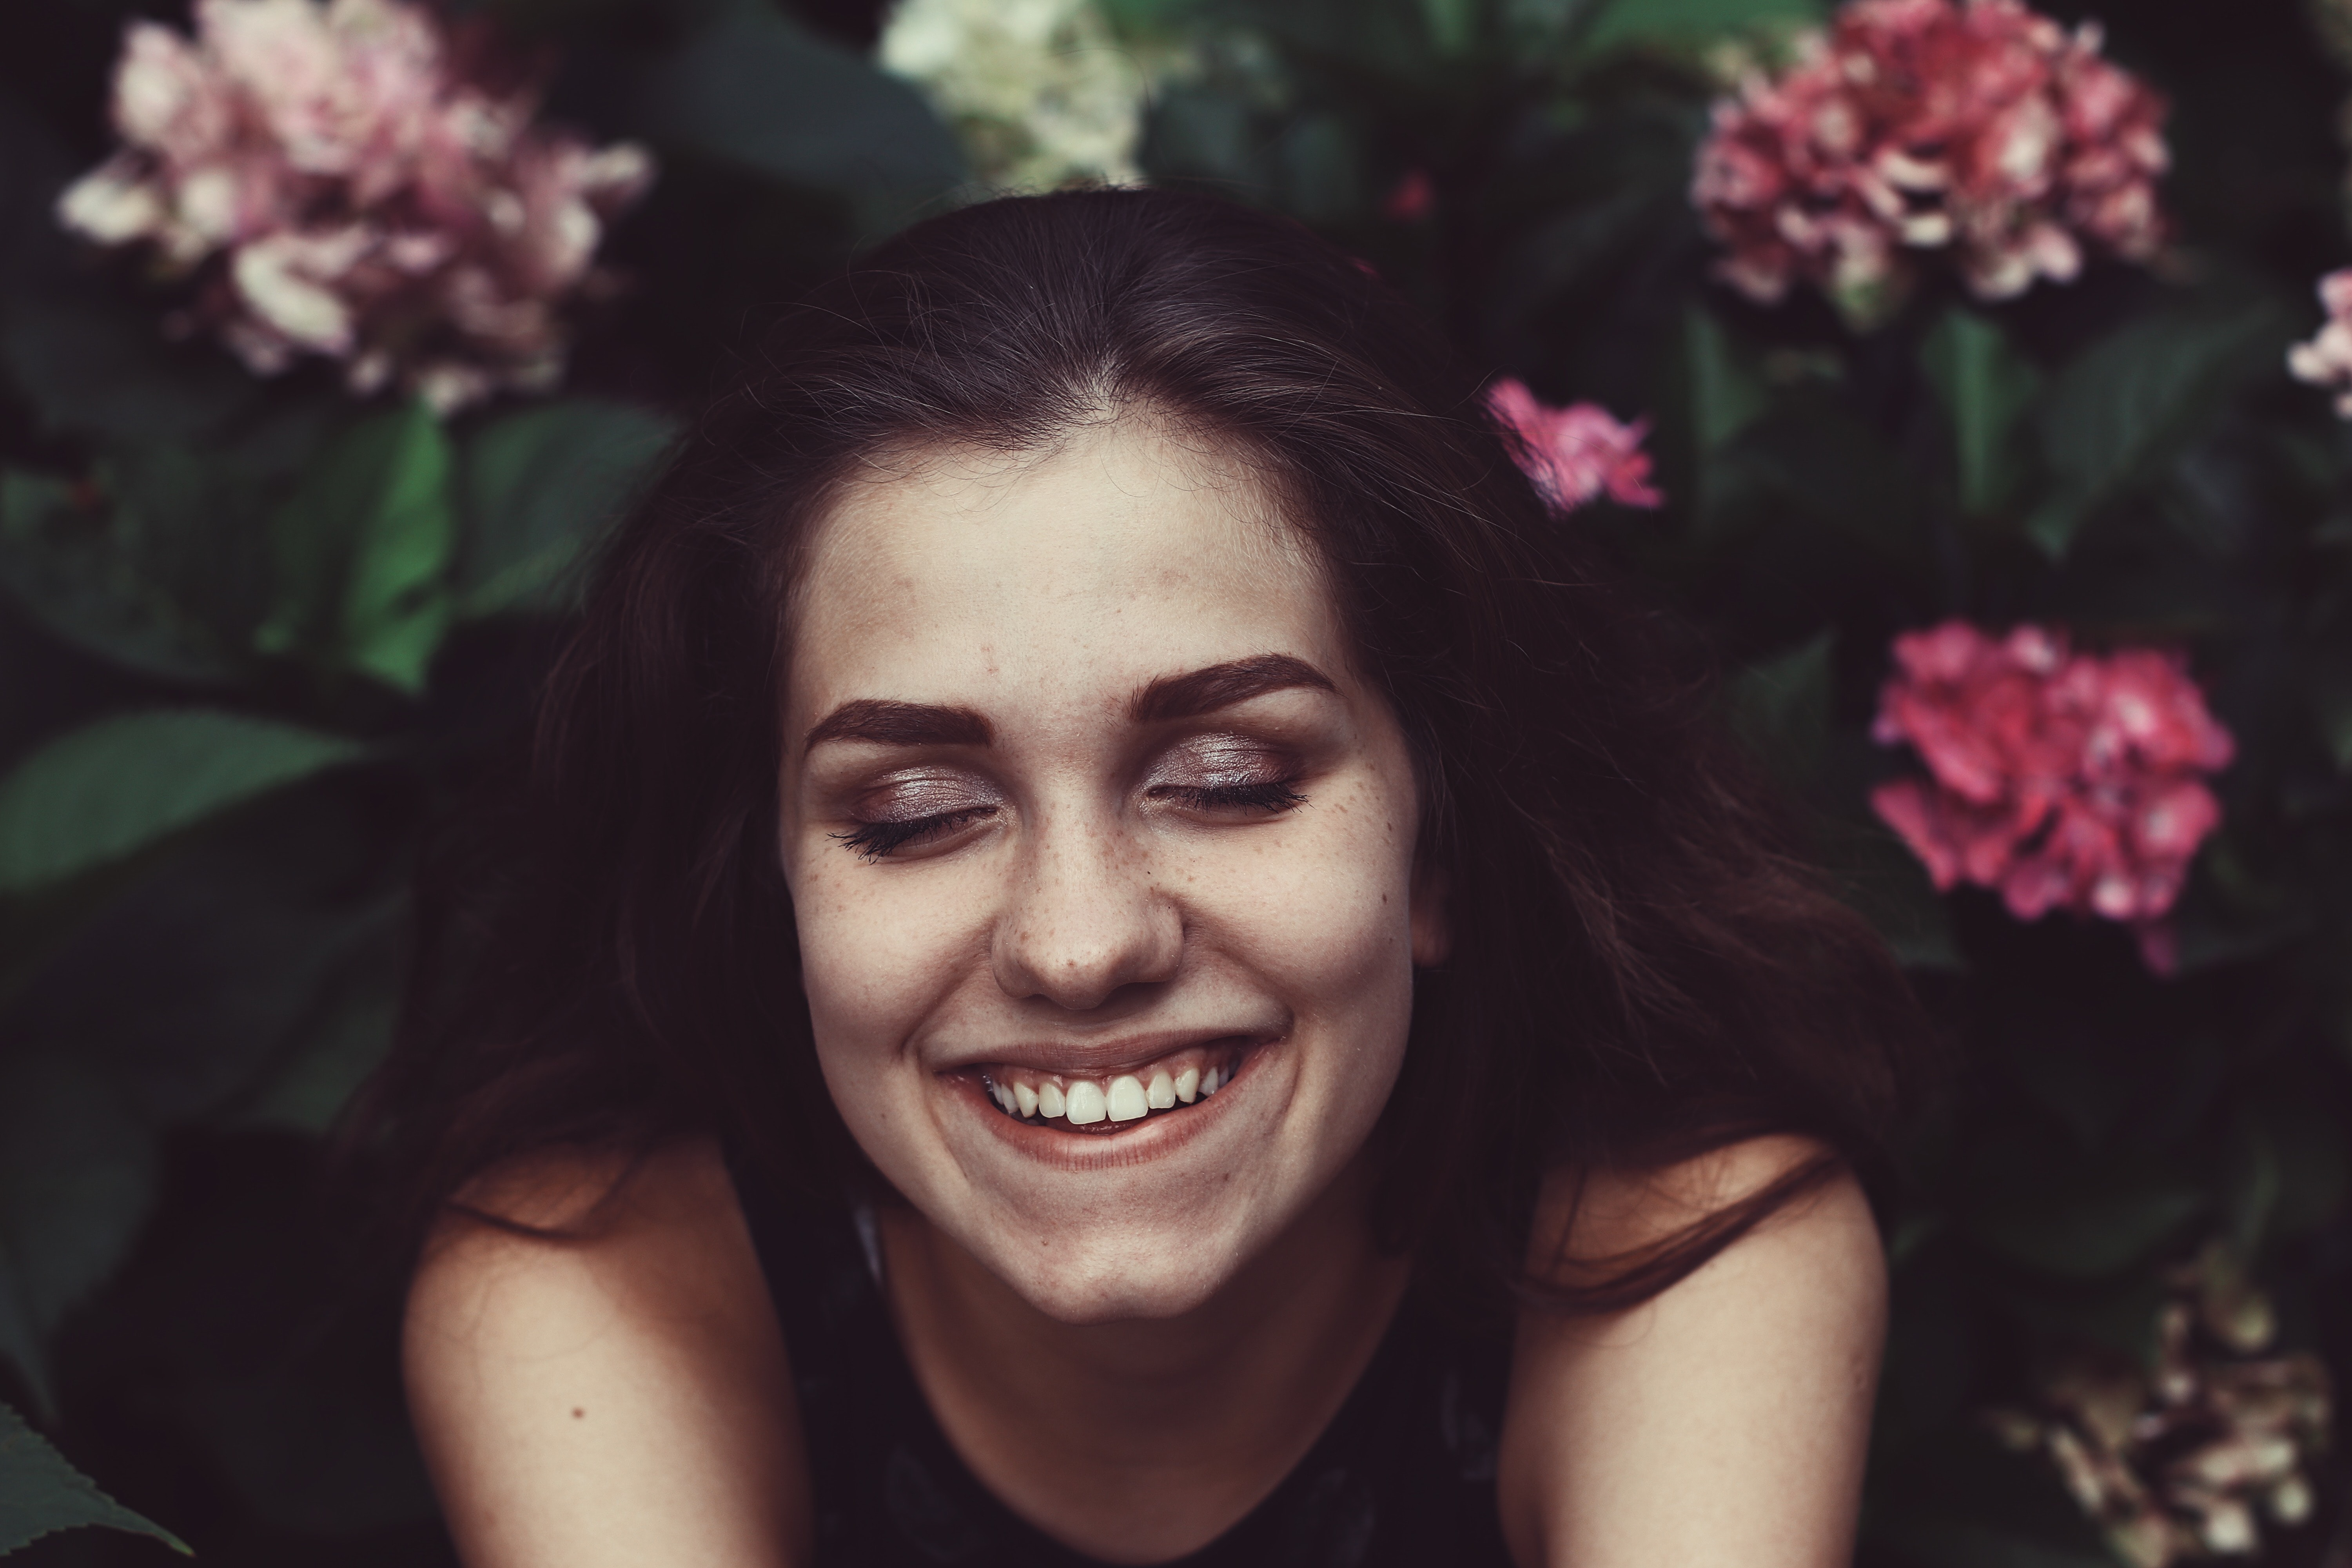 woman smiling face surrounded by flowers